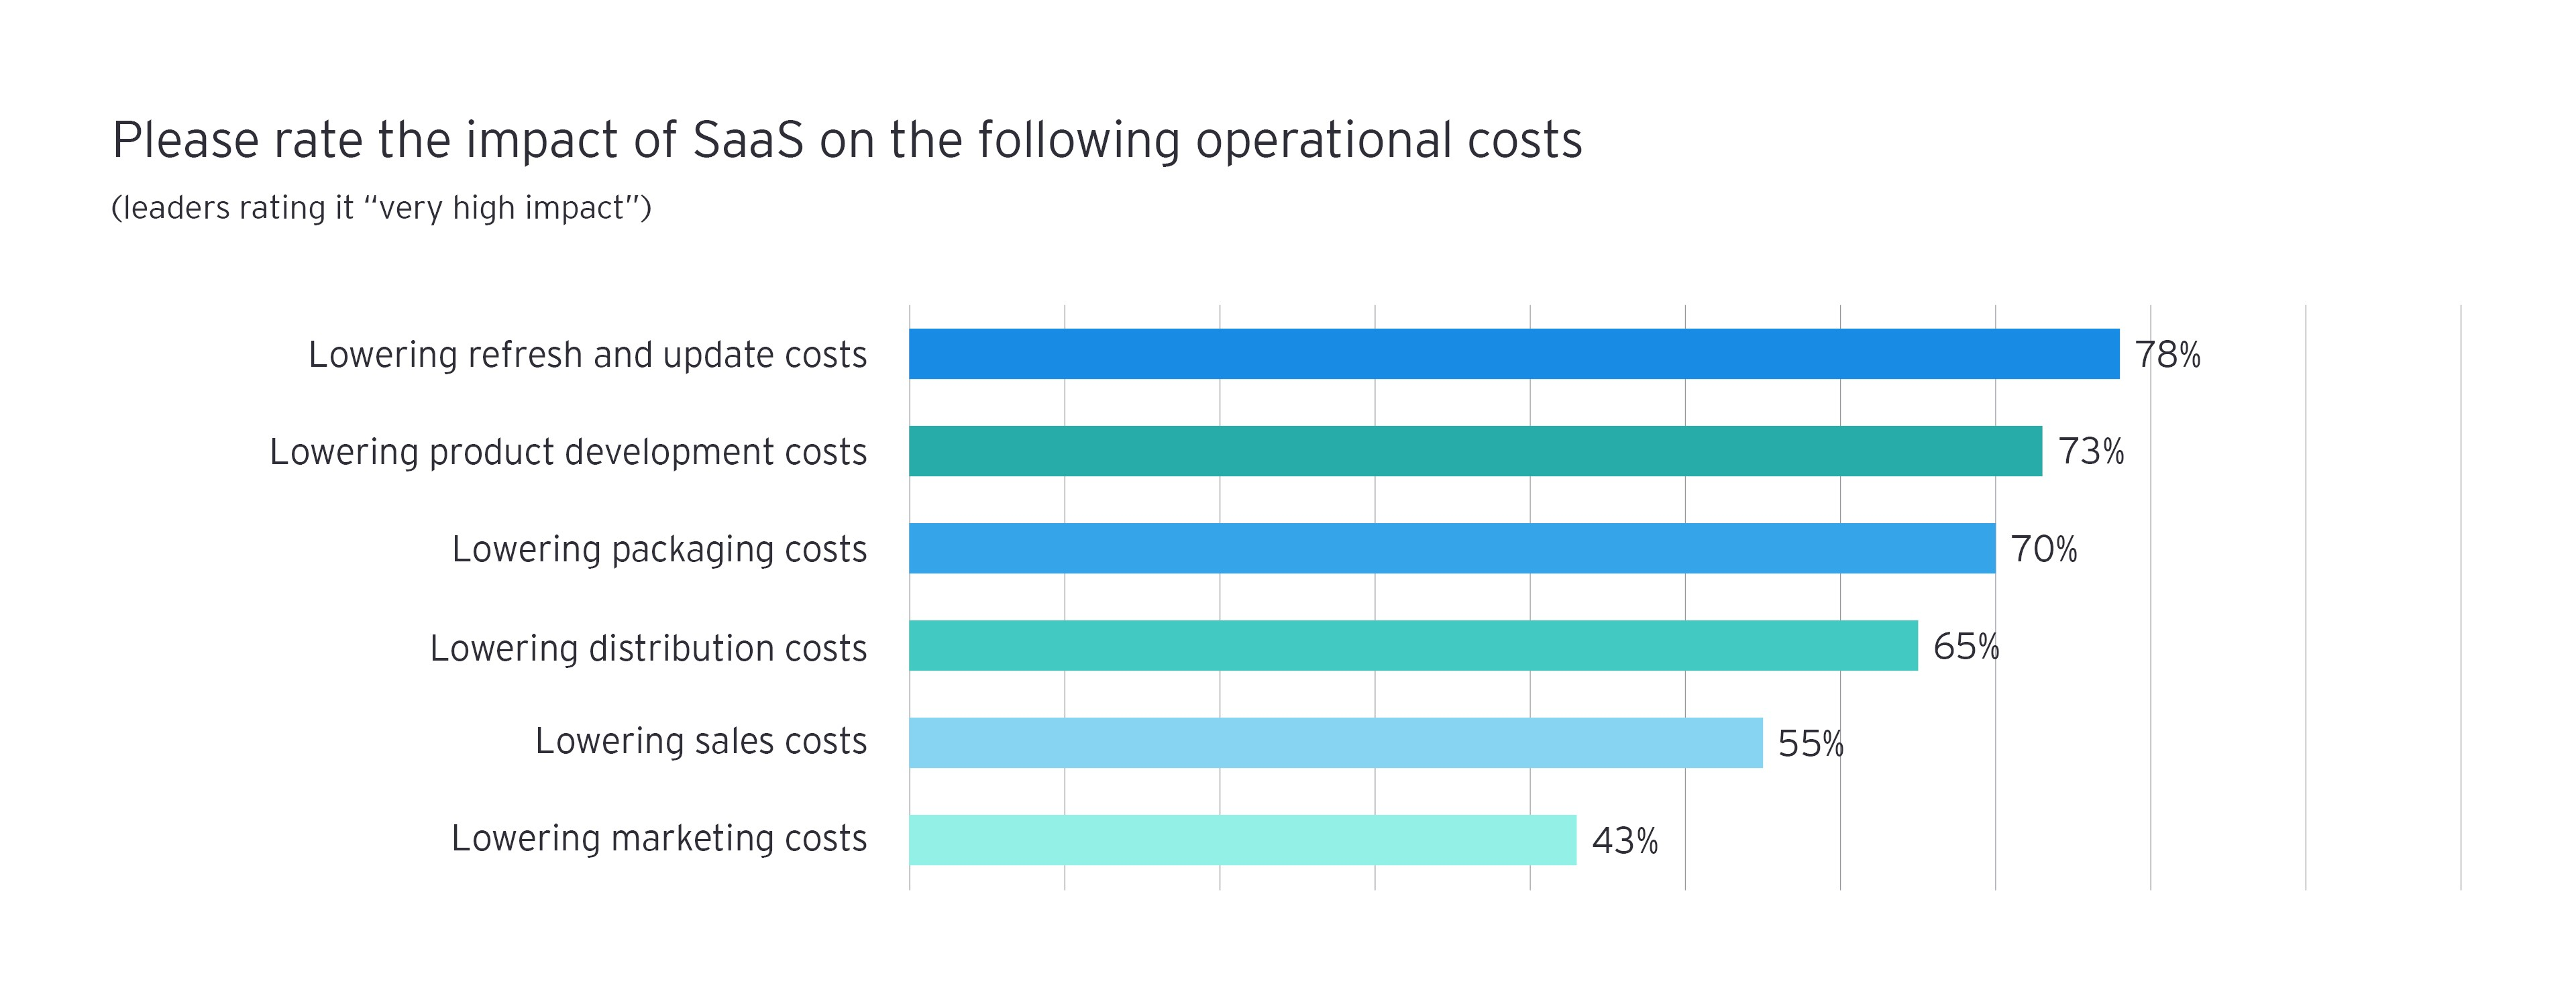 Please rate the impact of SaaS on operational costs